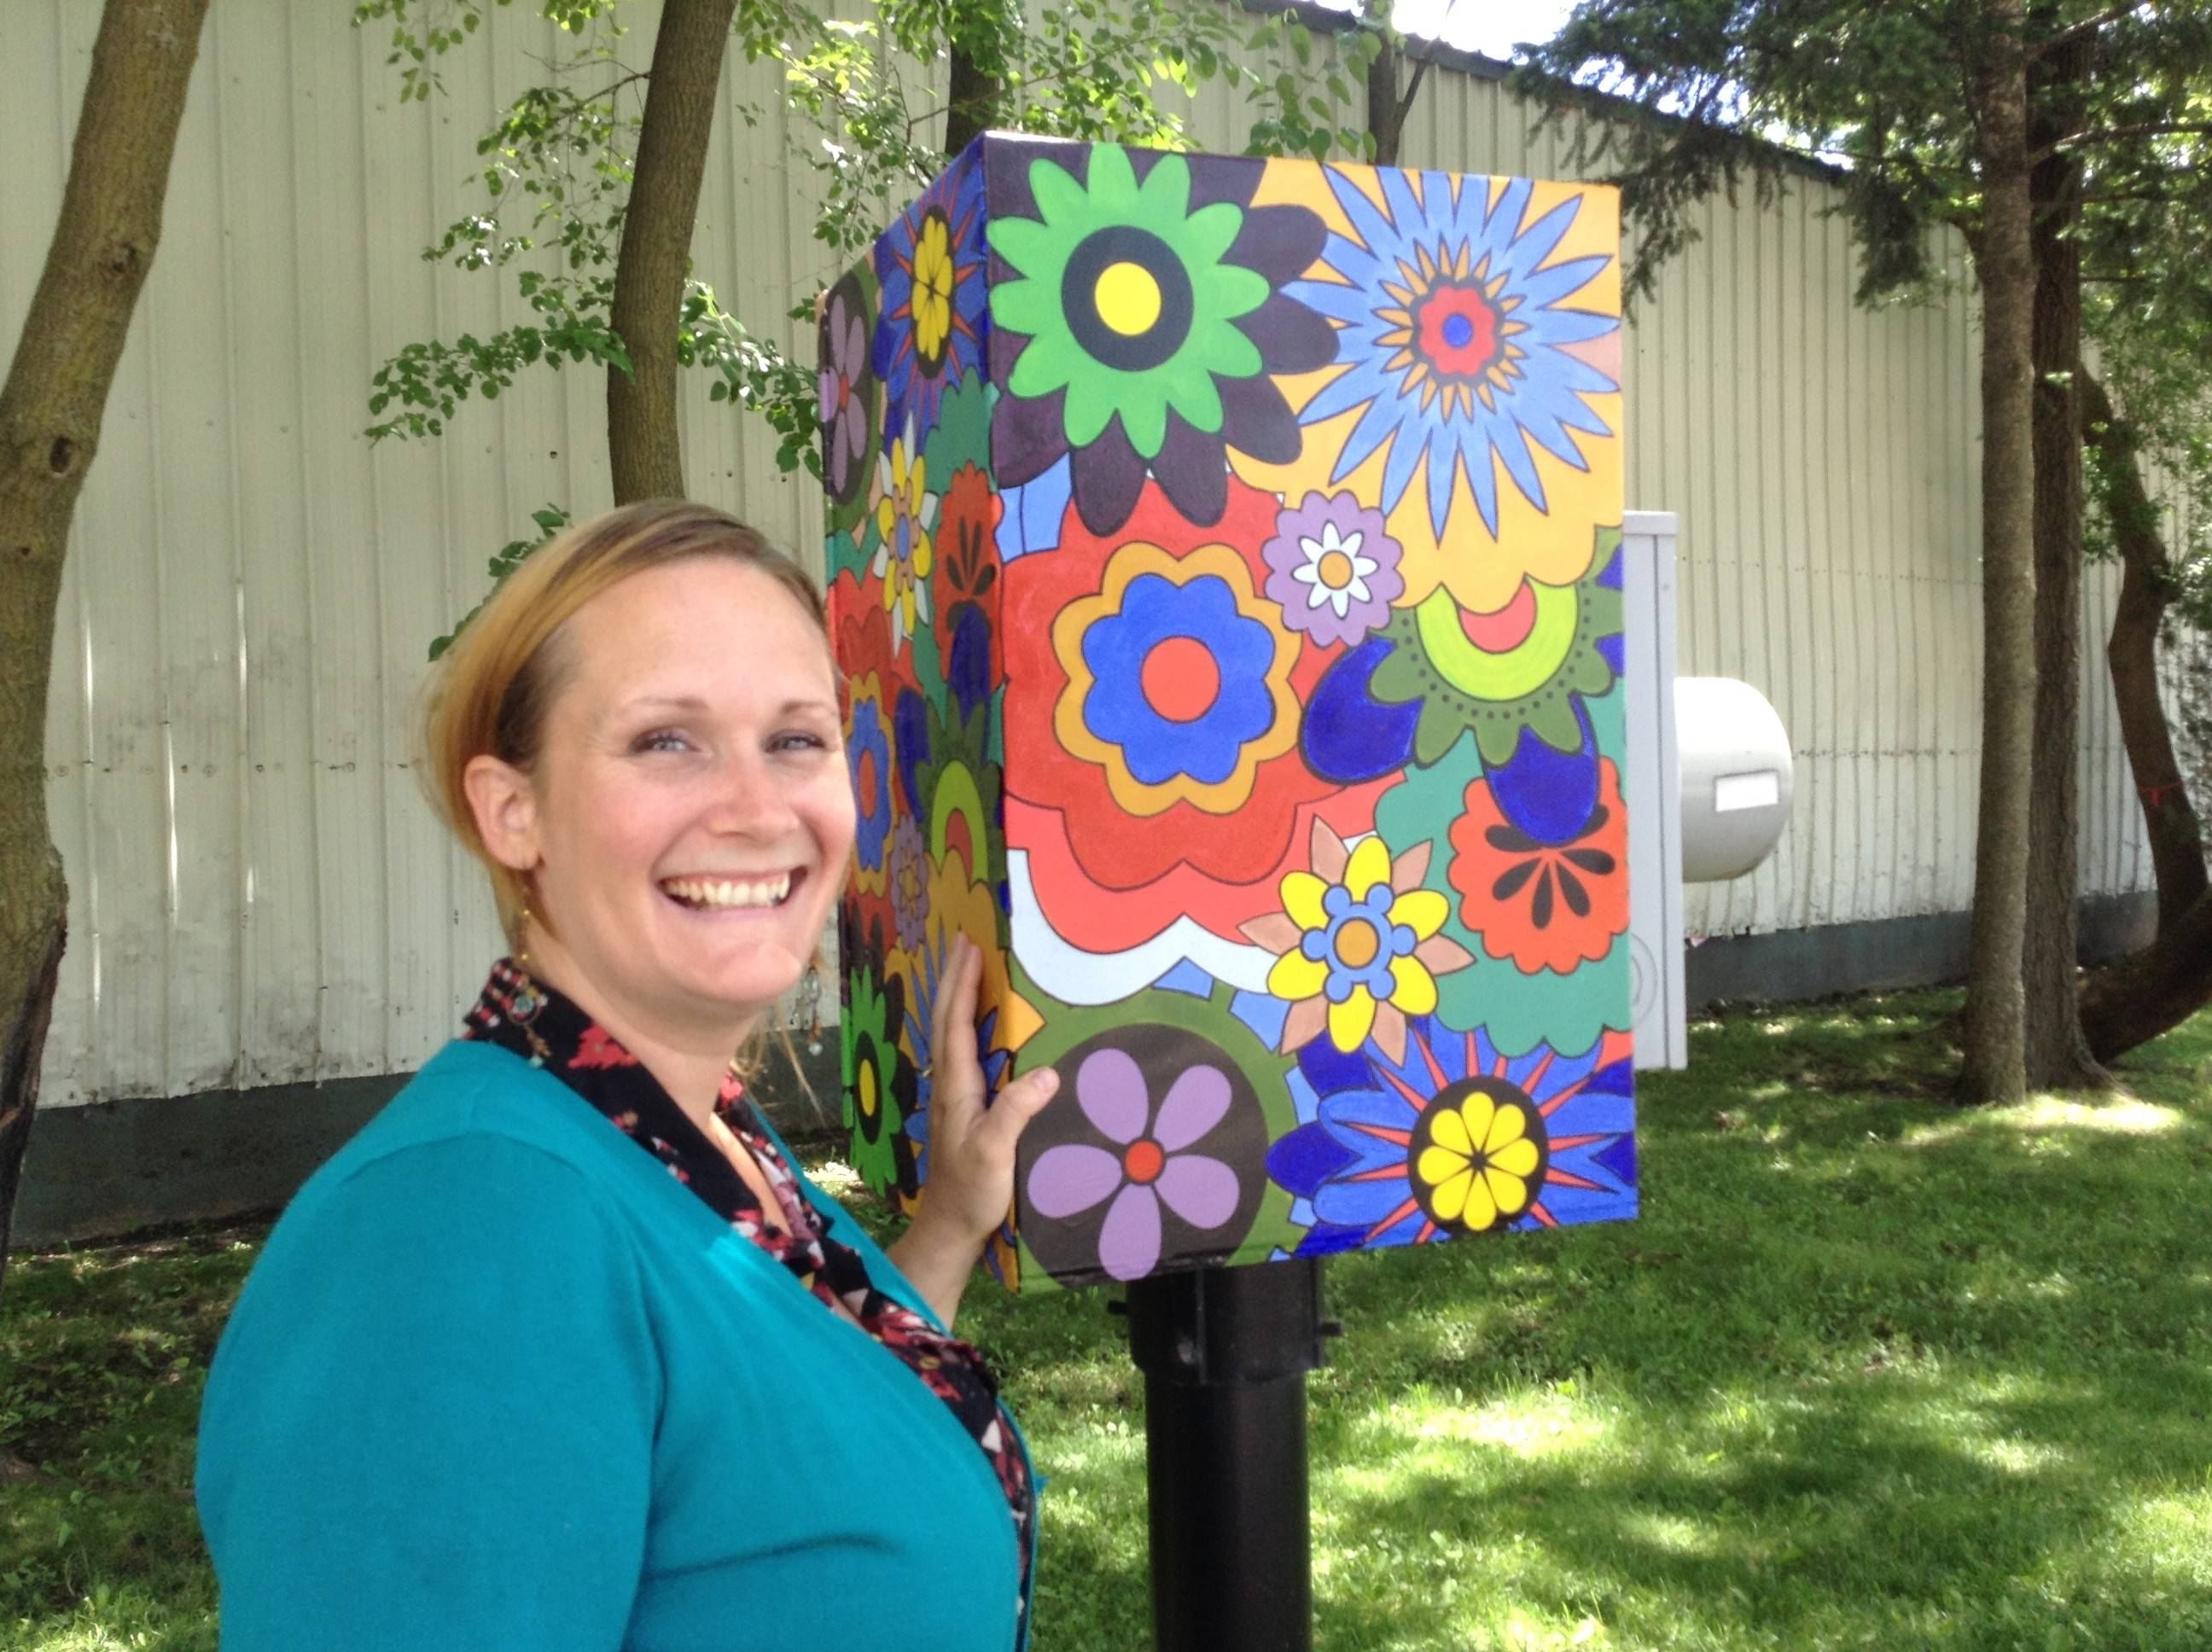 Mundelein to expand public art project